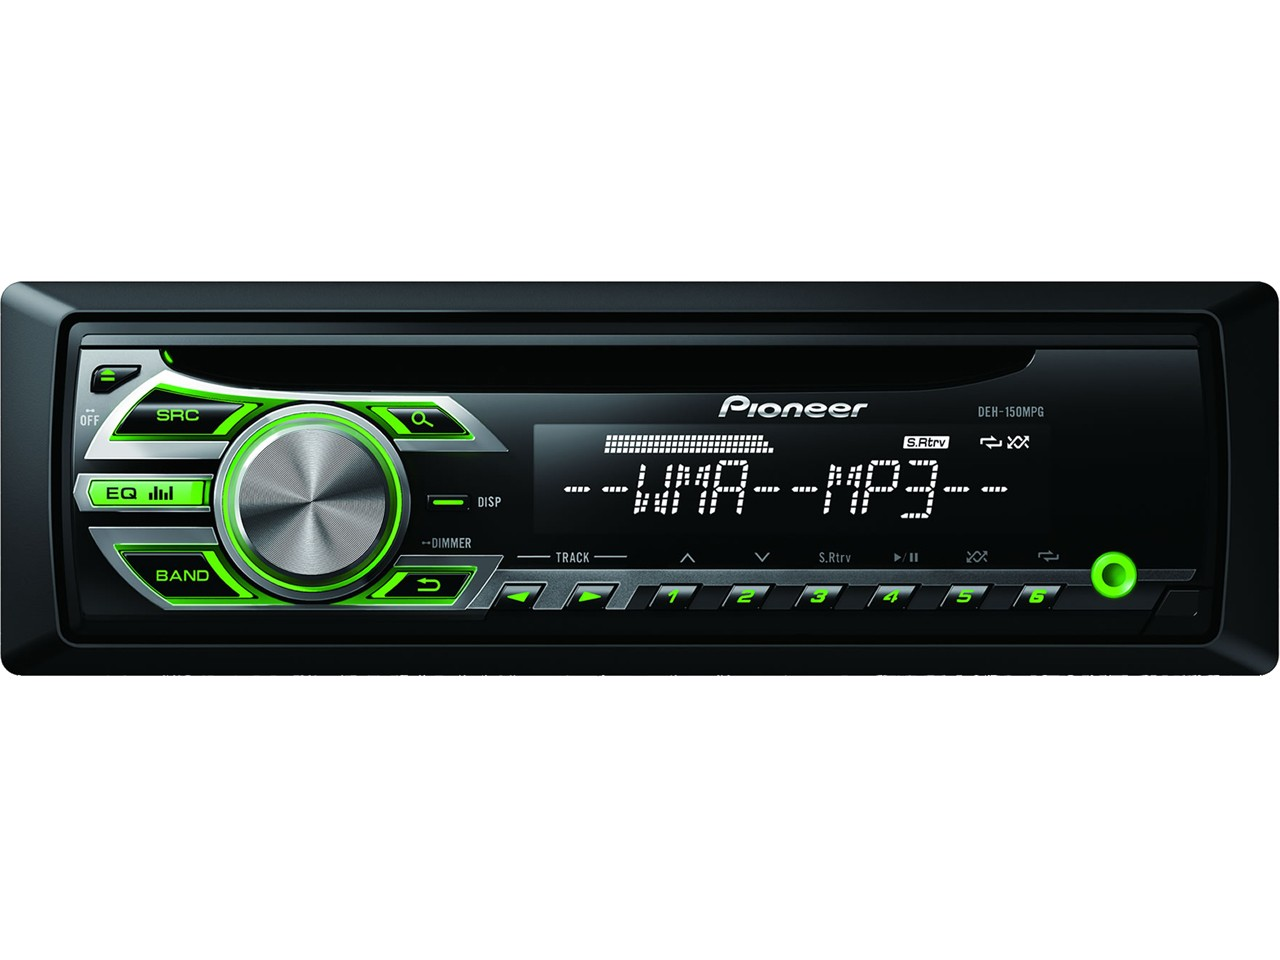 Pioneer pioneer cd tuner aux in deh150mpg deh 150mpg from pioneer deh 150mpg pioneer pioneer cd tuner aux in deh150mpg car audio centre publicscrutiny Choice Image